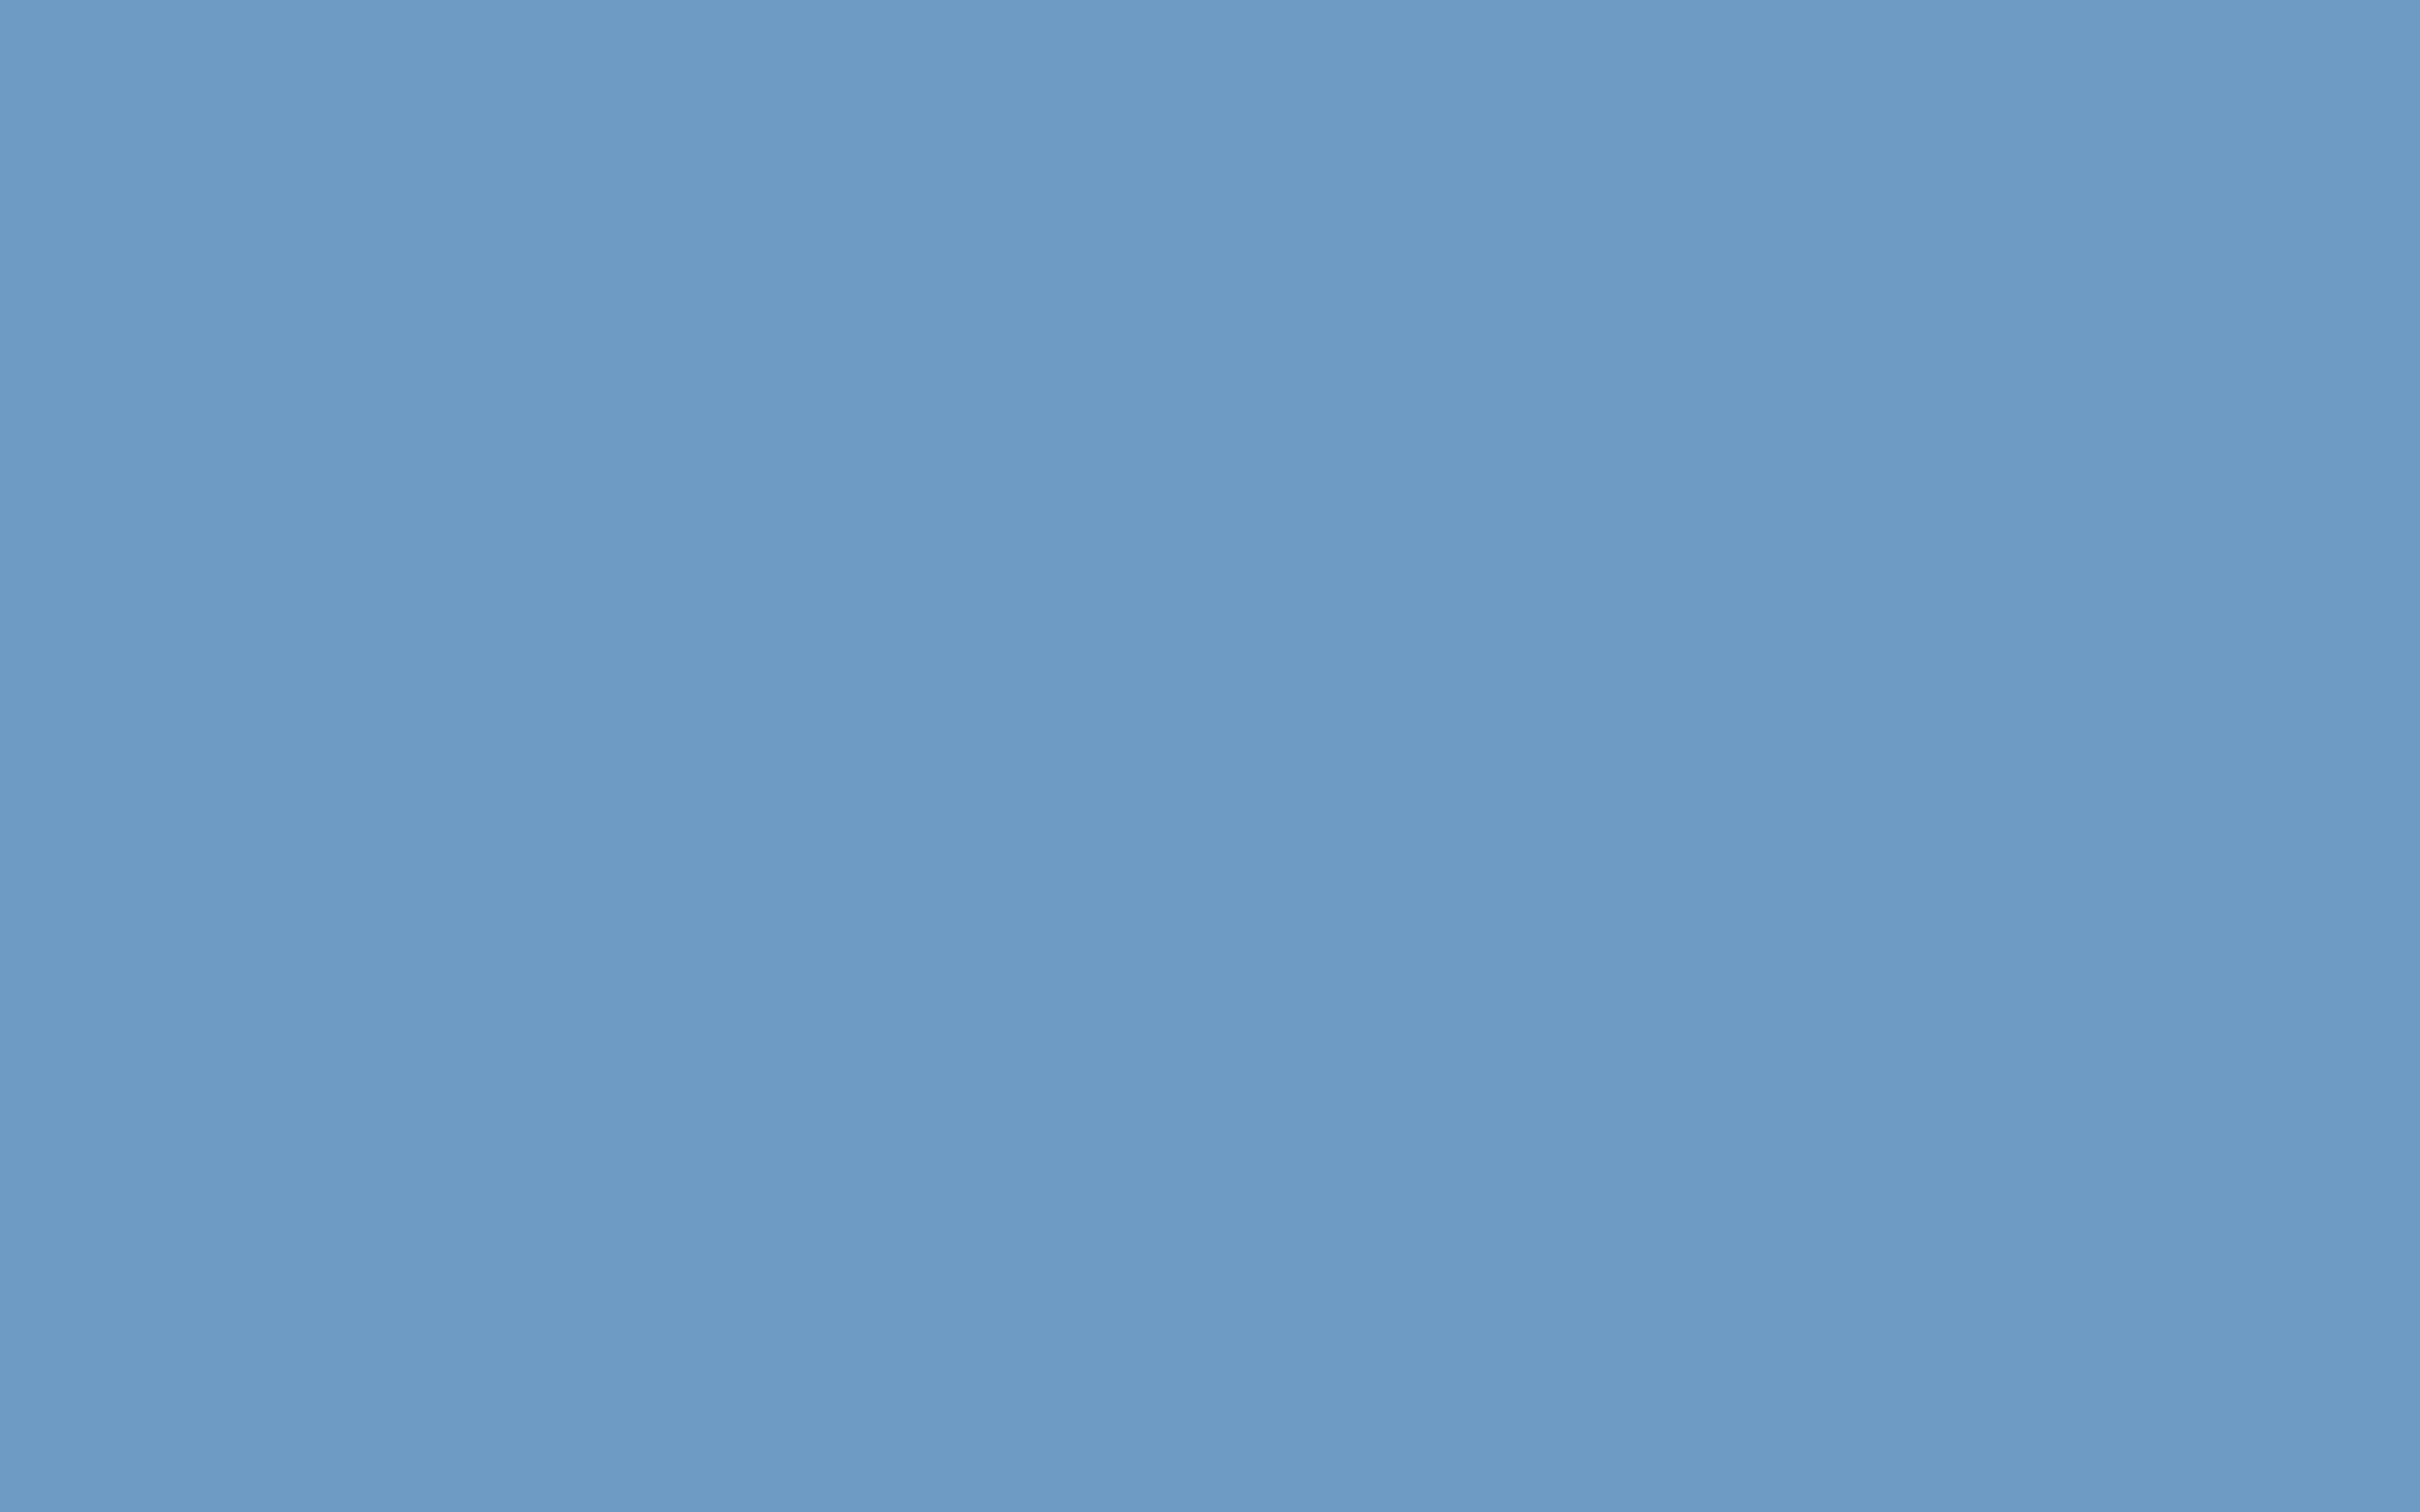 2560x1600 Cerulean Frost Solid Color Background